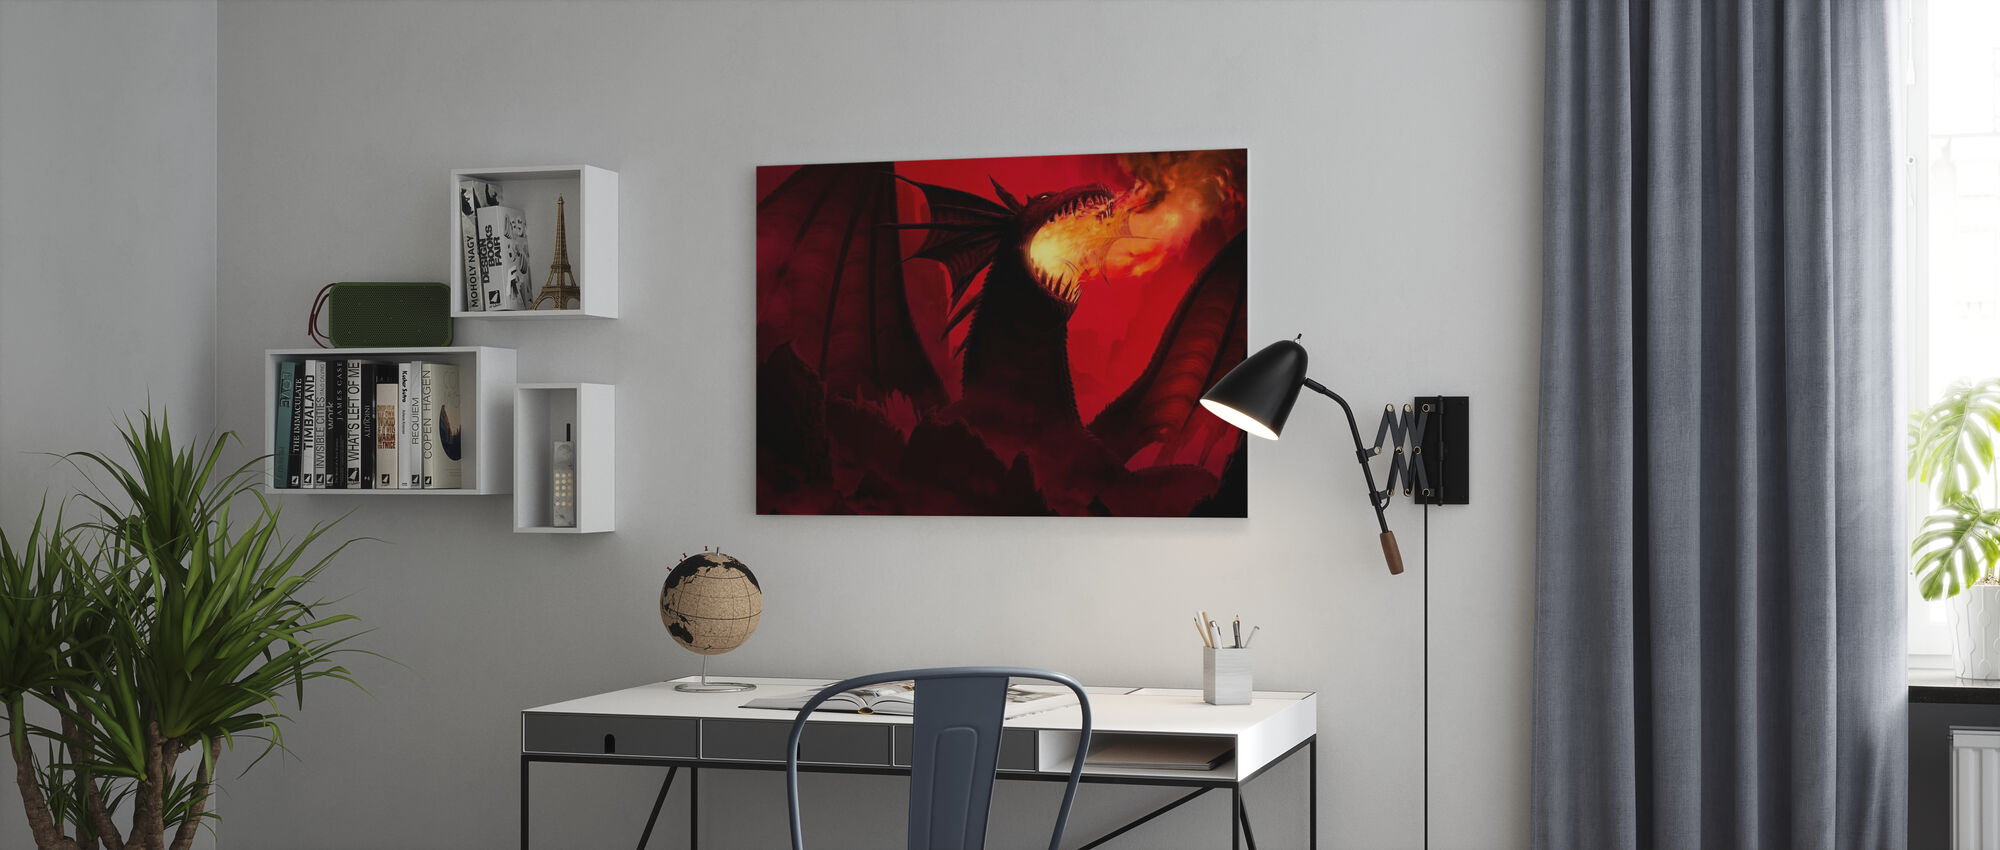 Dragon in Red - Canvas print - Office